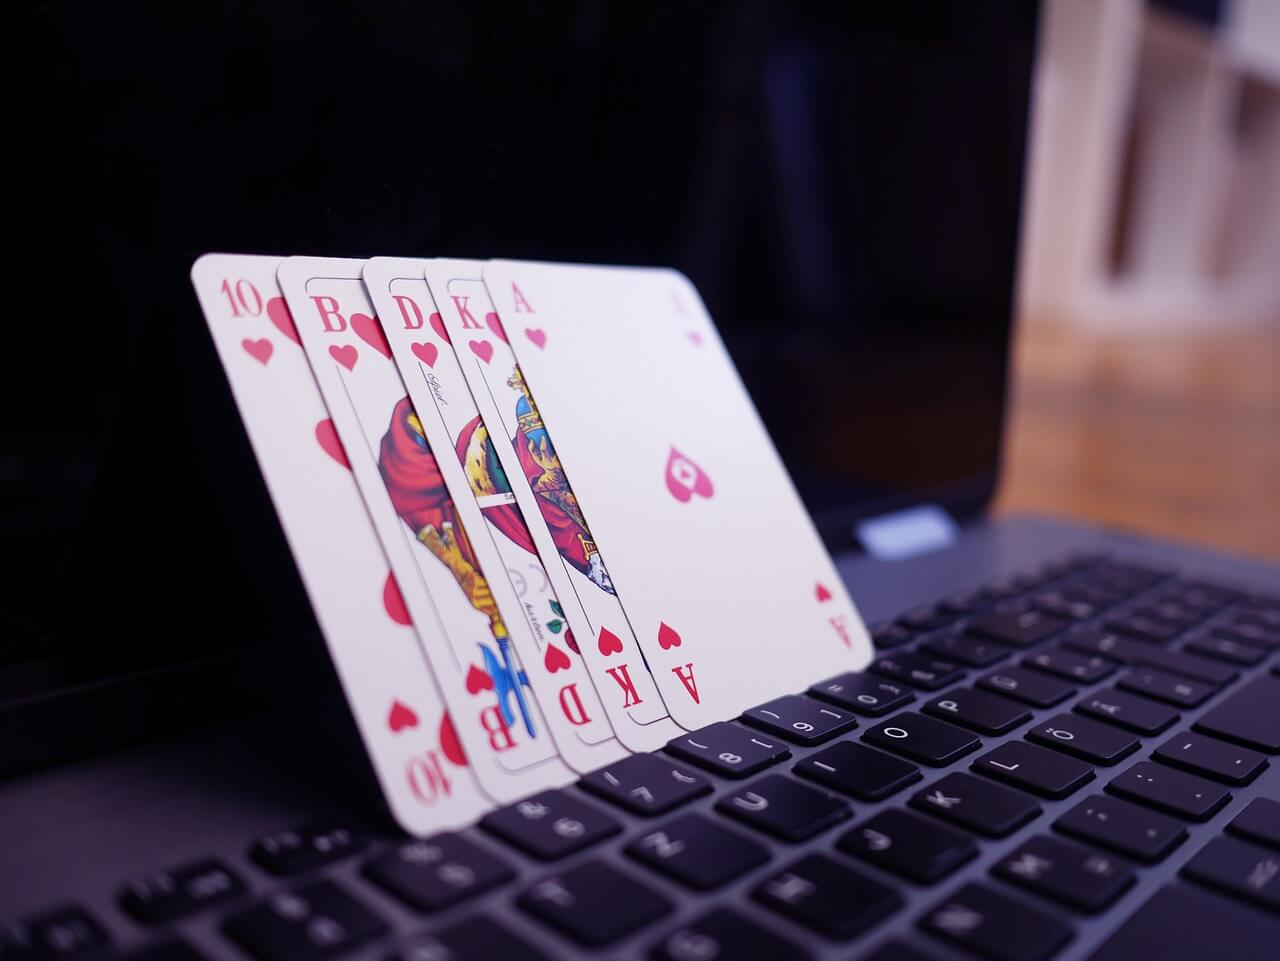 Newbies can play online poker safely